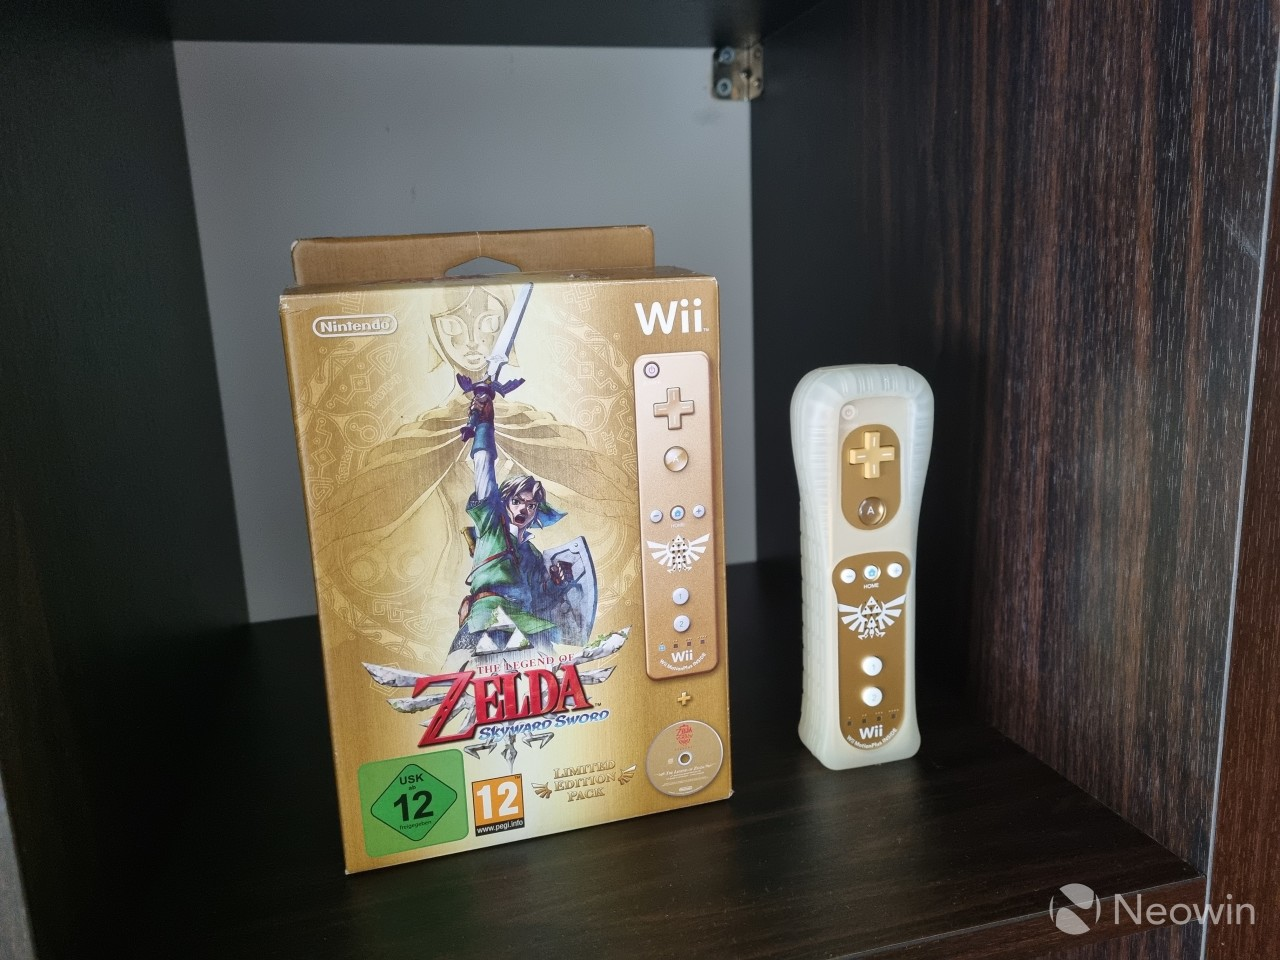 A video game box next to a Wii Remote